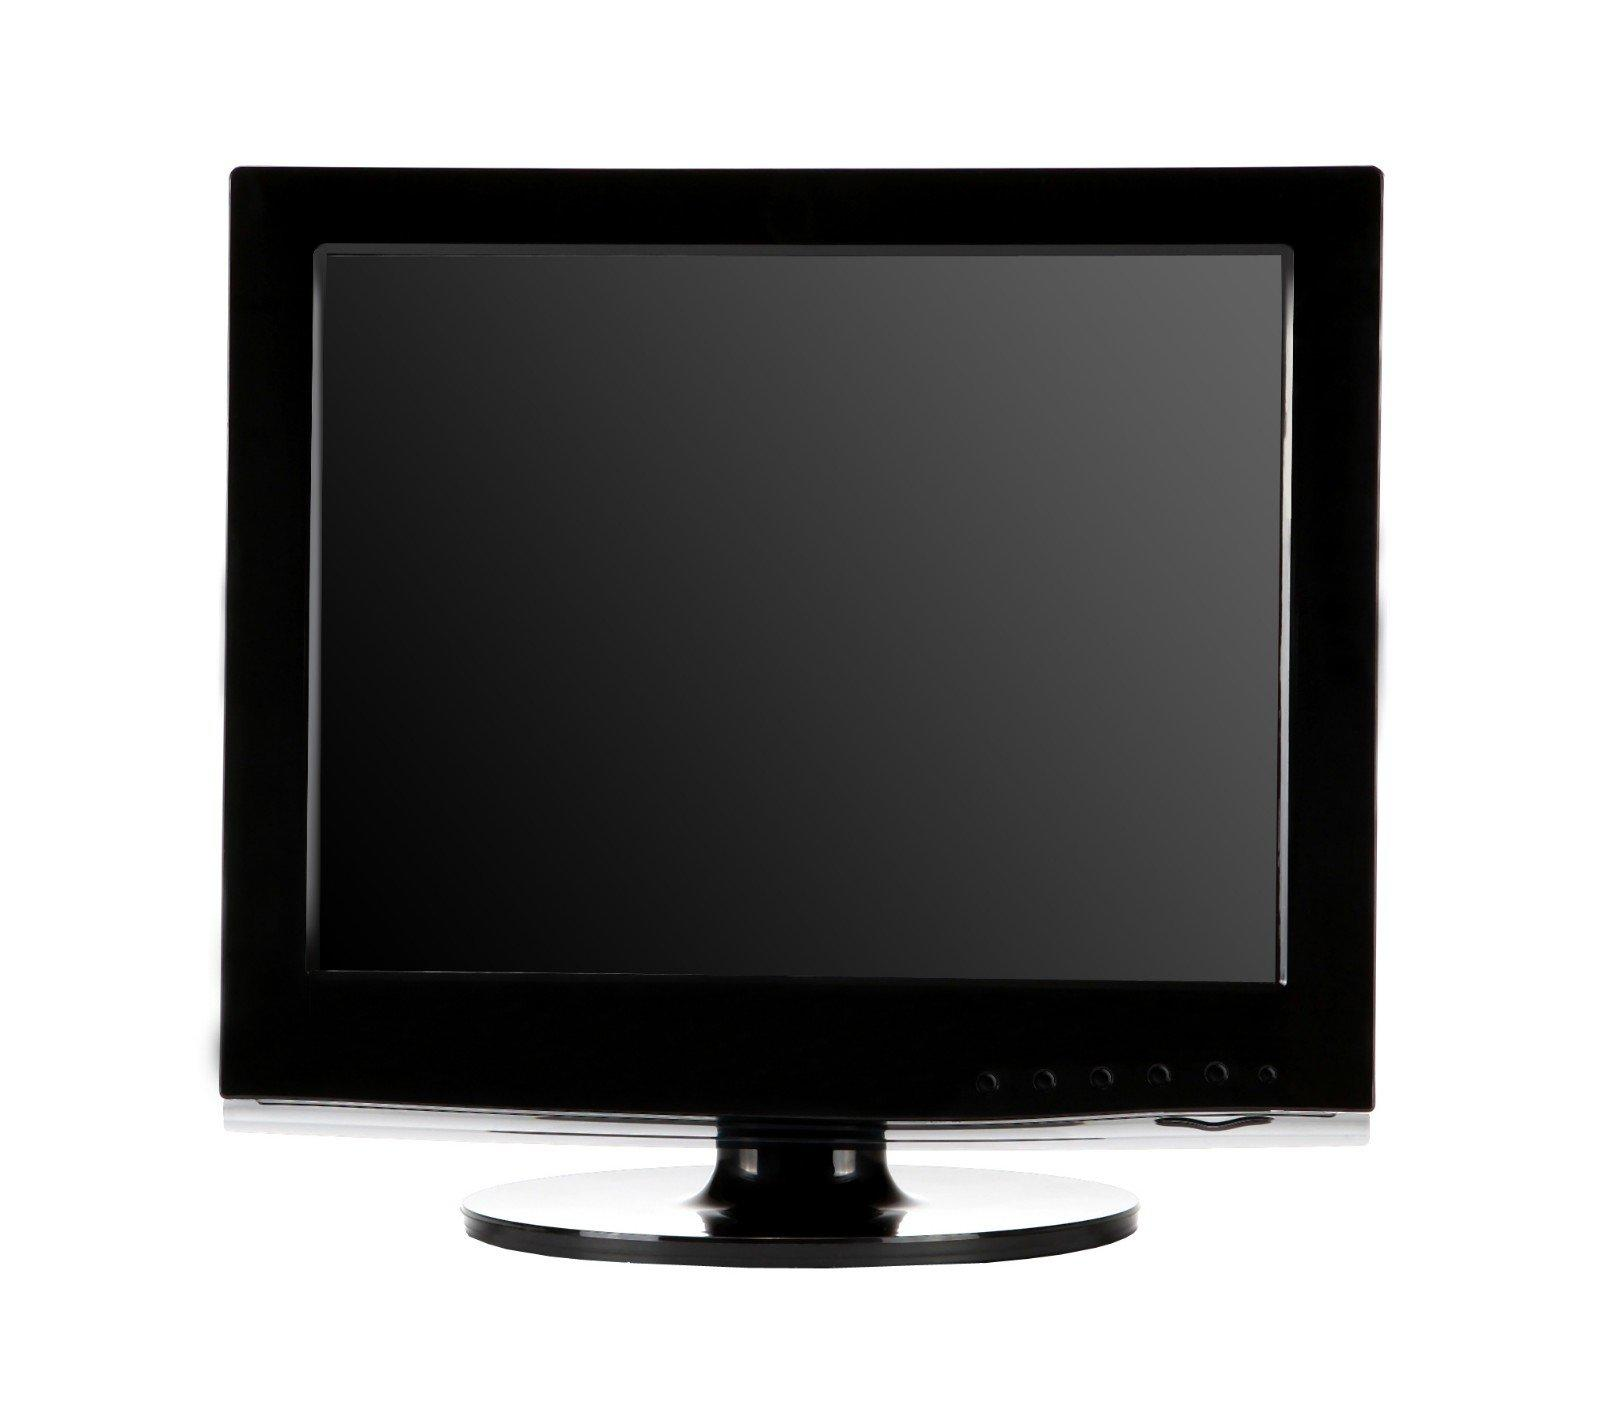 high quality 15 lcd monitor with hdmi output for lcd screen-1